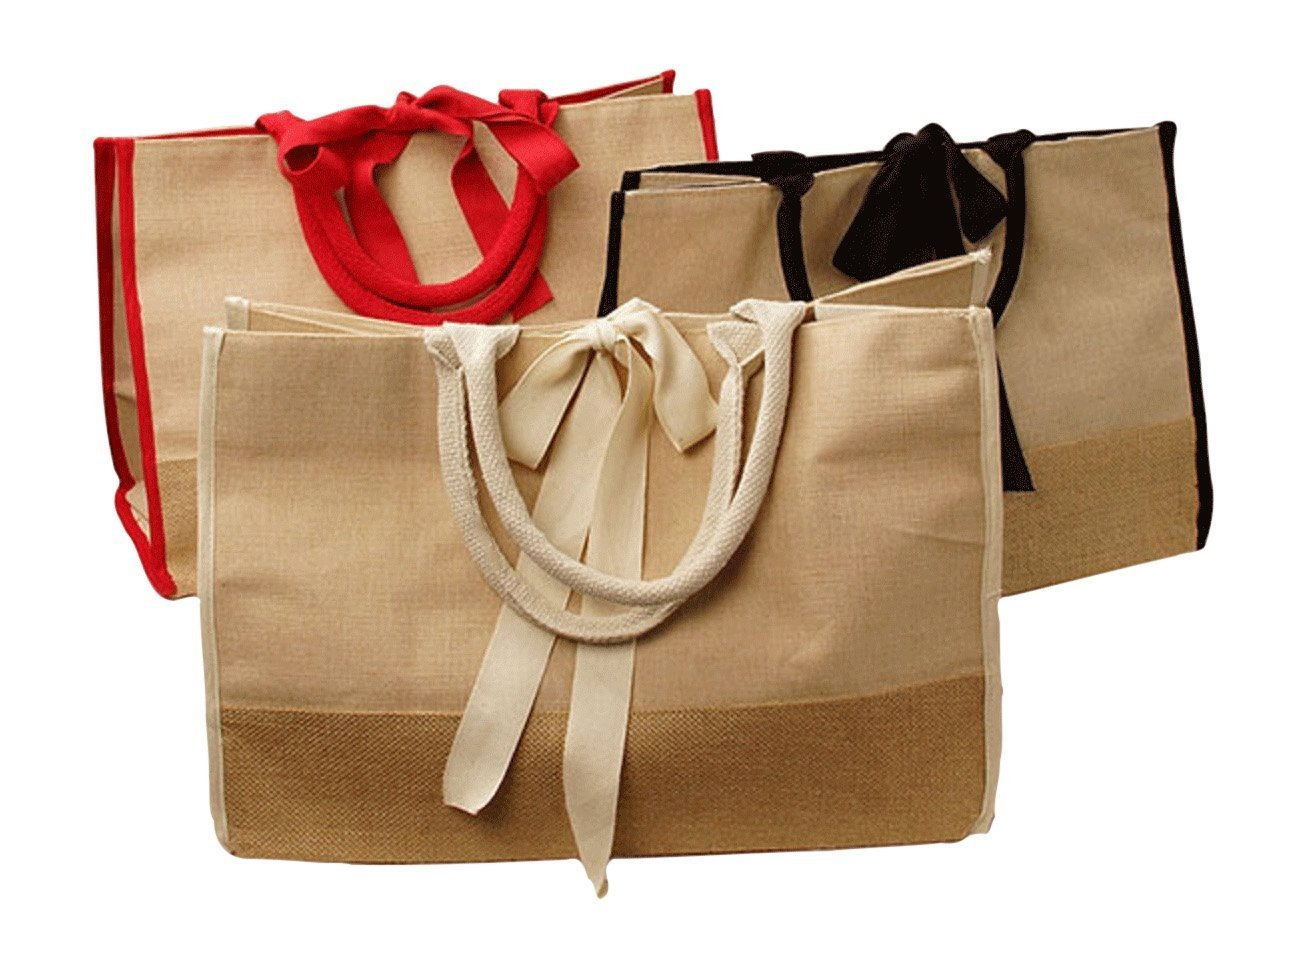 est Reusable Jute Burlap Shopping Bag and All-Purpose Tote for Groceries, Gym Clothes, Laptop, Diapers & Carry-On Items. Rope Handles. Large: 17 ½ X 11 ½ X 8 ½. (Natural and Red)